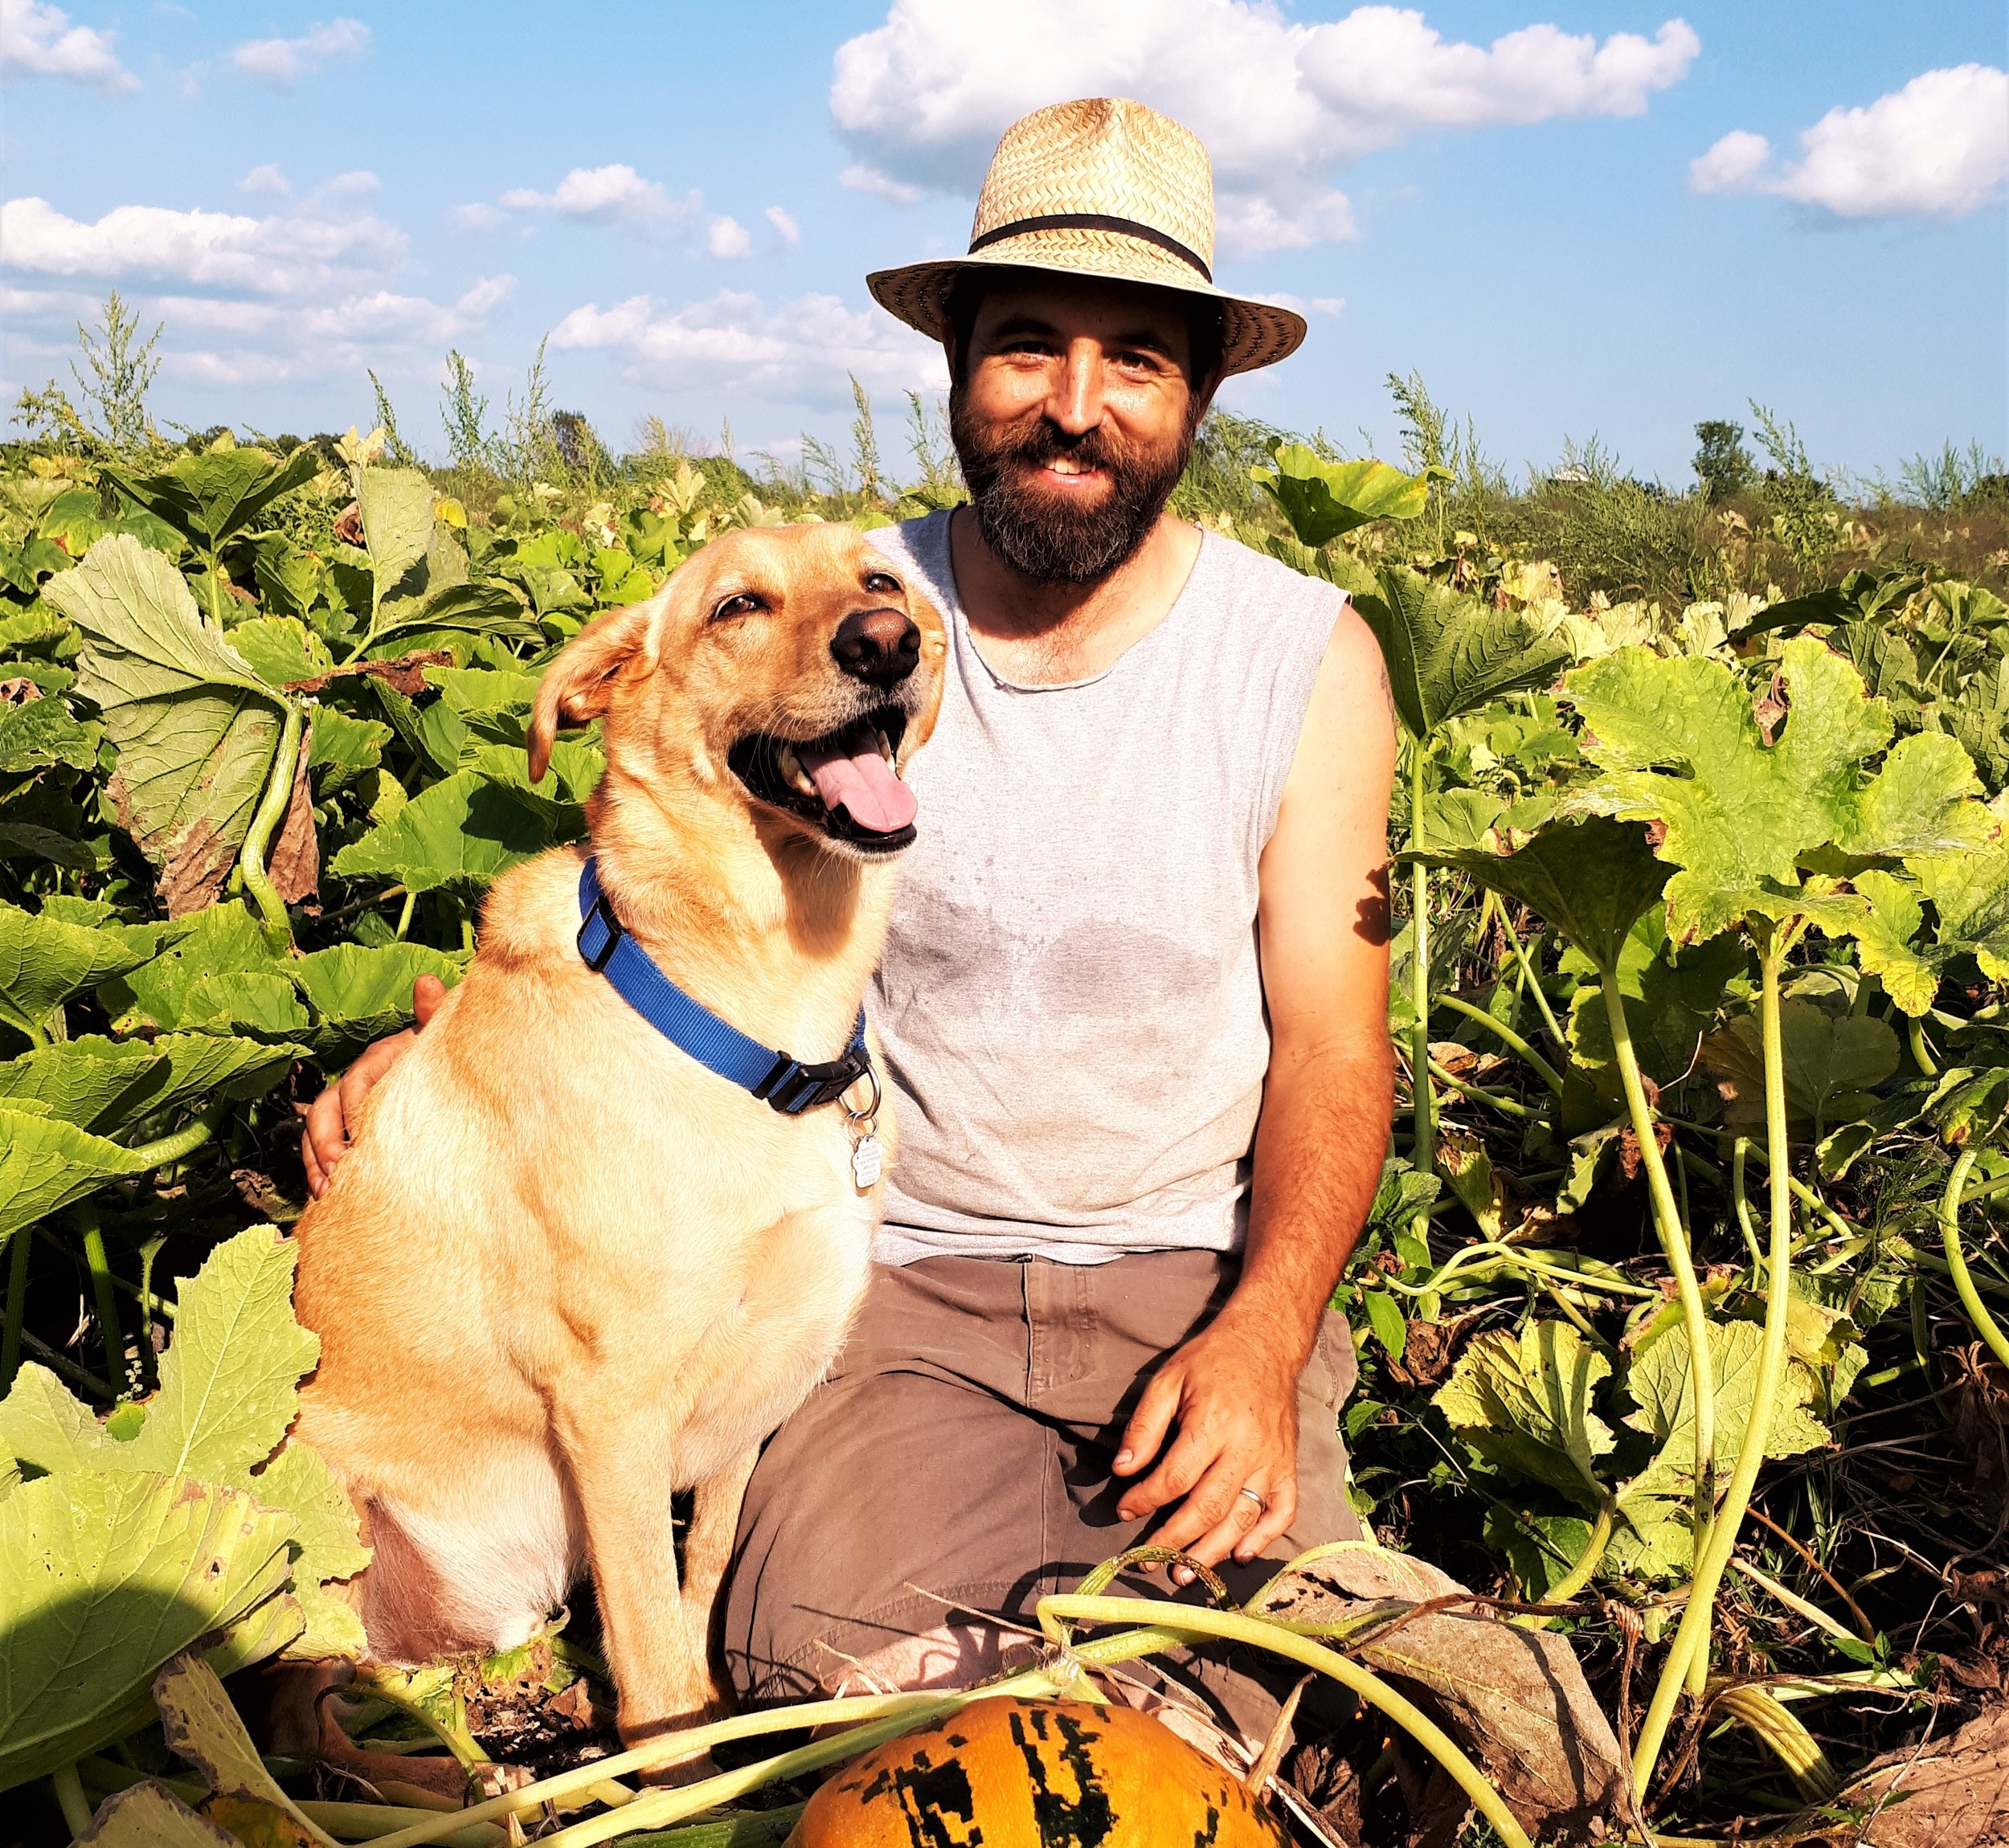 John in the pumpkin patch with Onion, our happy yellow dog.